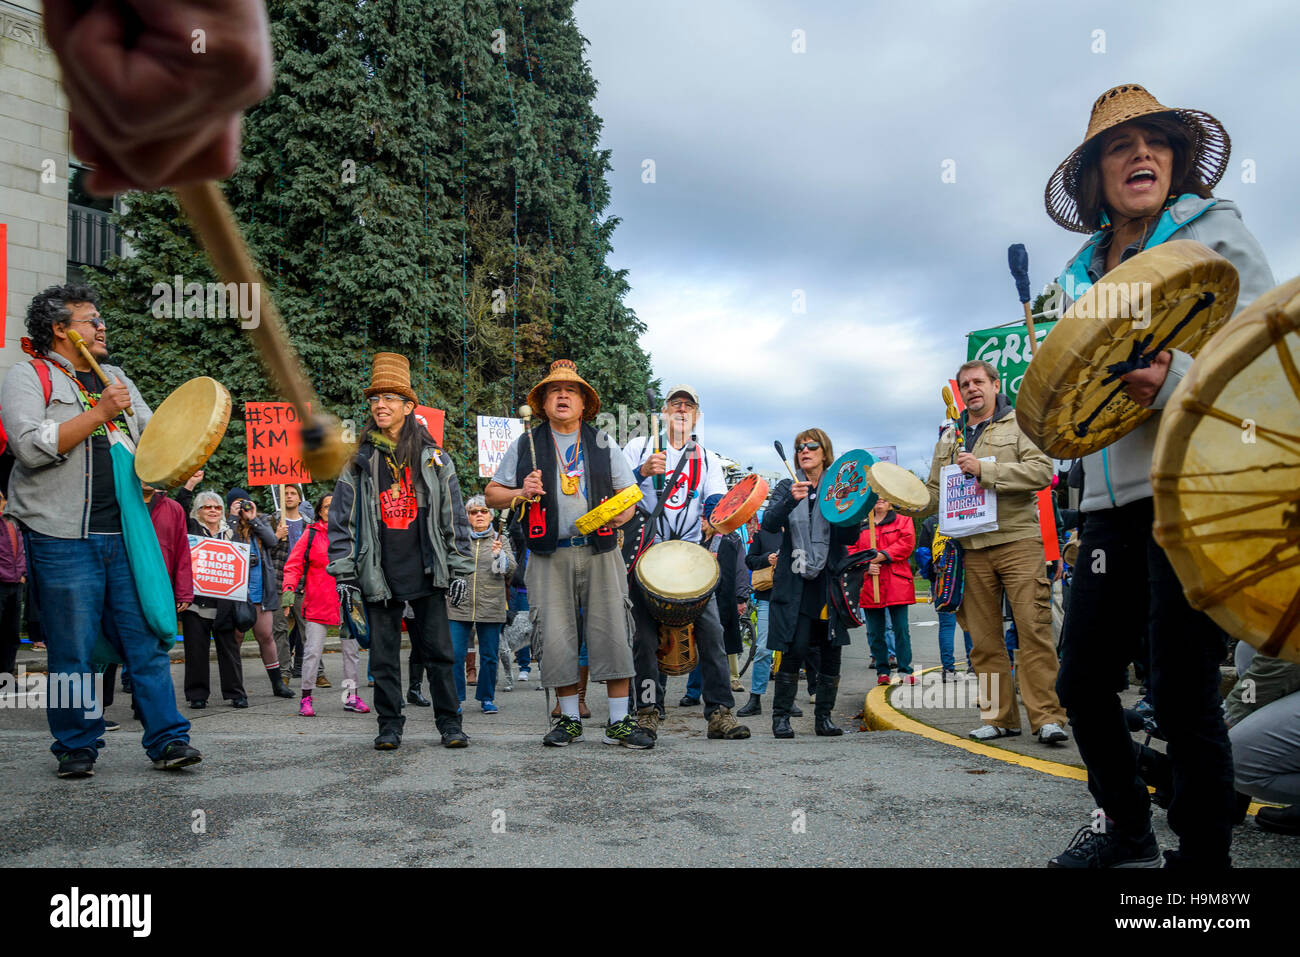 Anti Kinder Morgan Pipeline Protest Rally Vancouver City Hall, Vancouver, British Columbia, Canada. - Stock Image